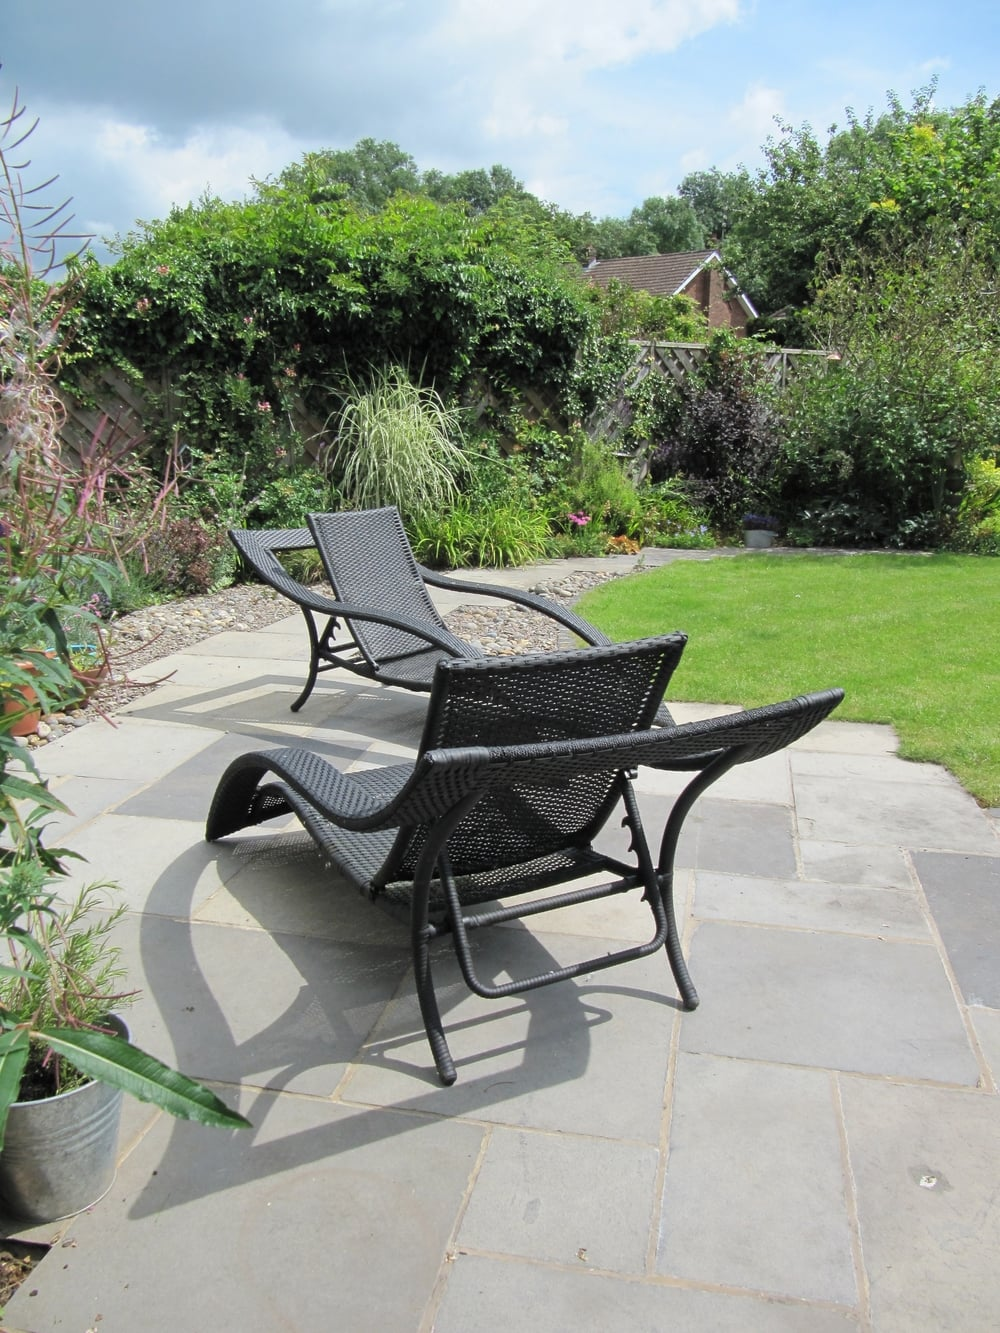 Shapely garden furniture offers a place for relaxation in a sunny suburban Cardiff garden.